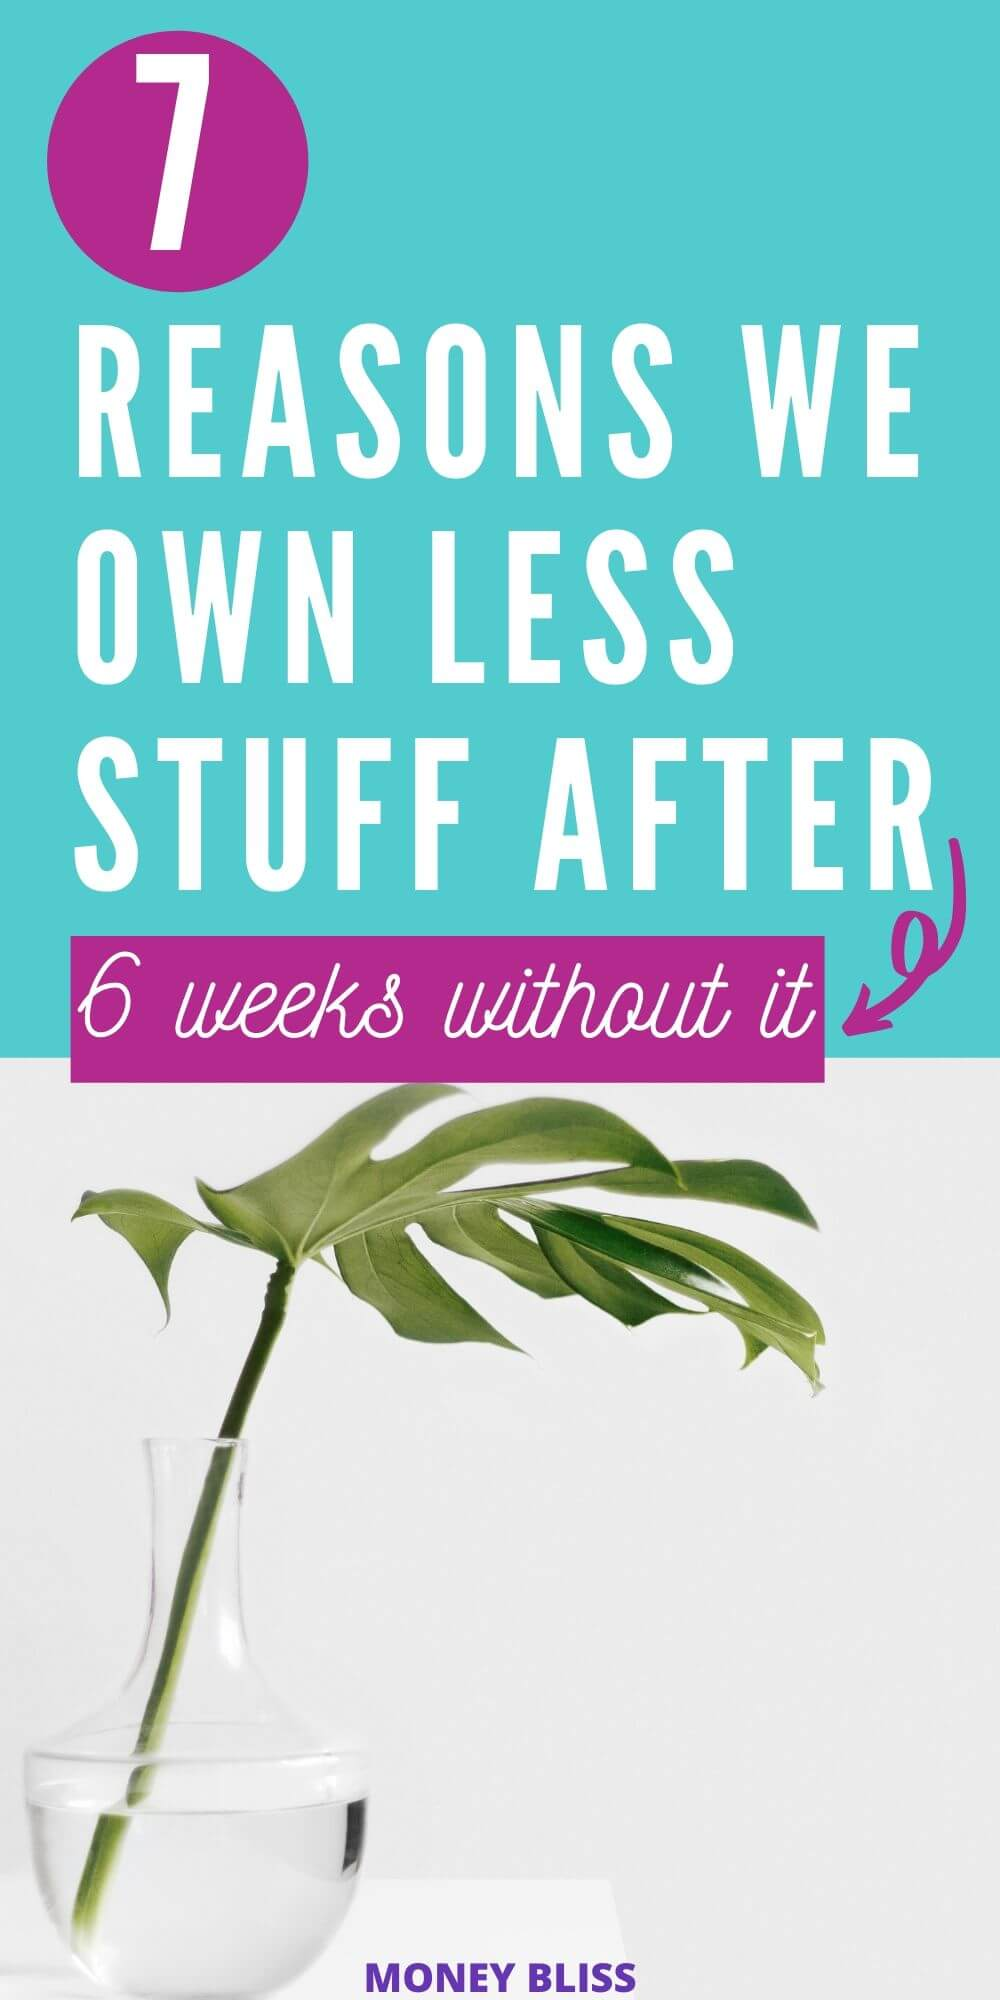 Is It better to have less stuff? Here is our journey after living without our belongings for 6 weeks. Learn how to live with less stuff. Maybe the start of your minimalist life. We are choosing to live with less. The financial impact is greater than we thought.